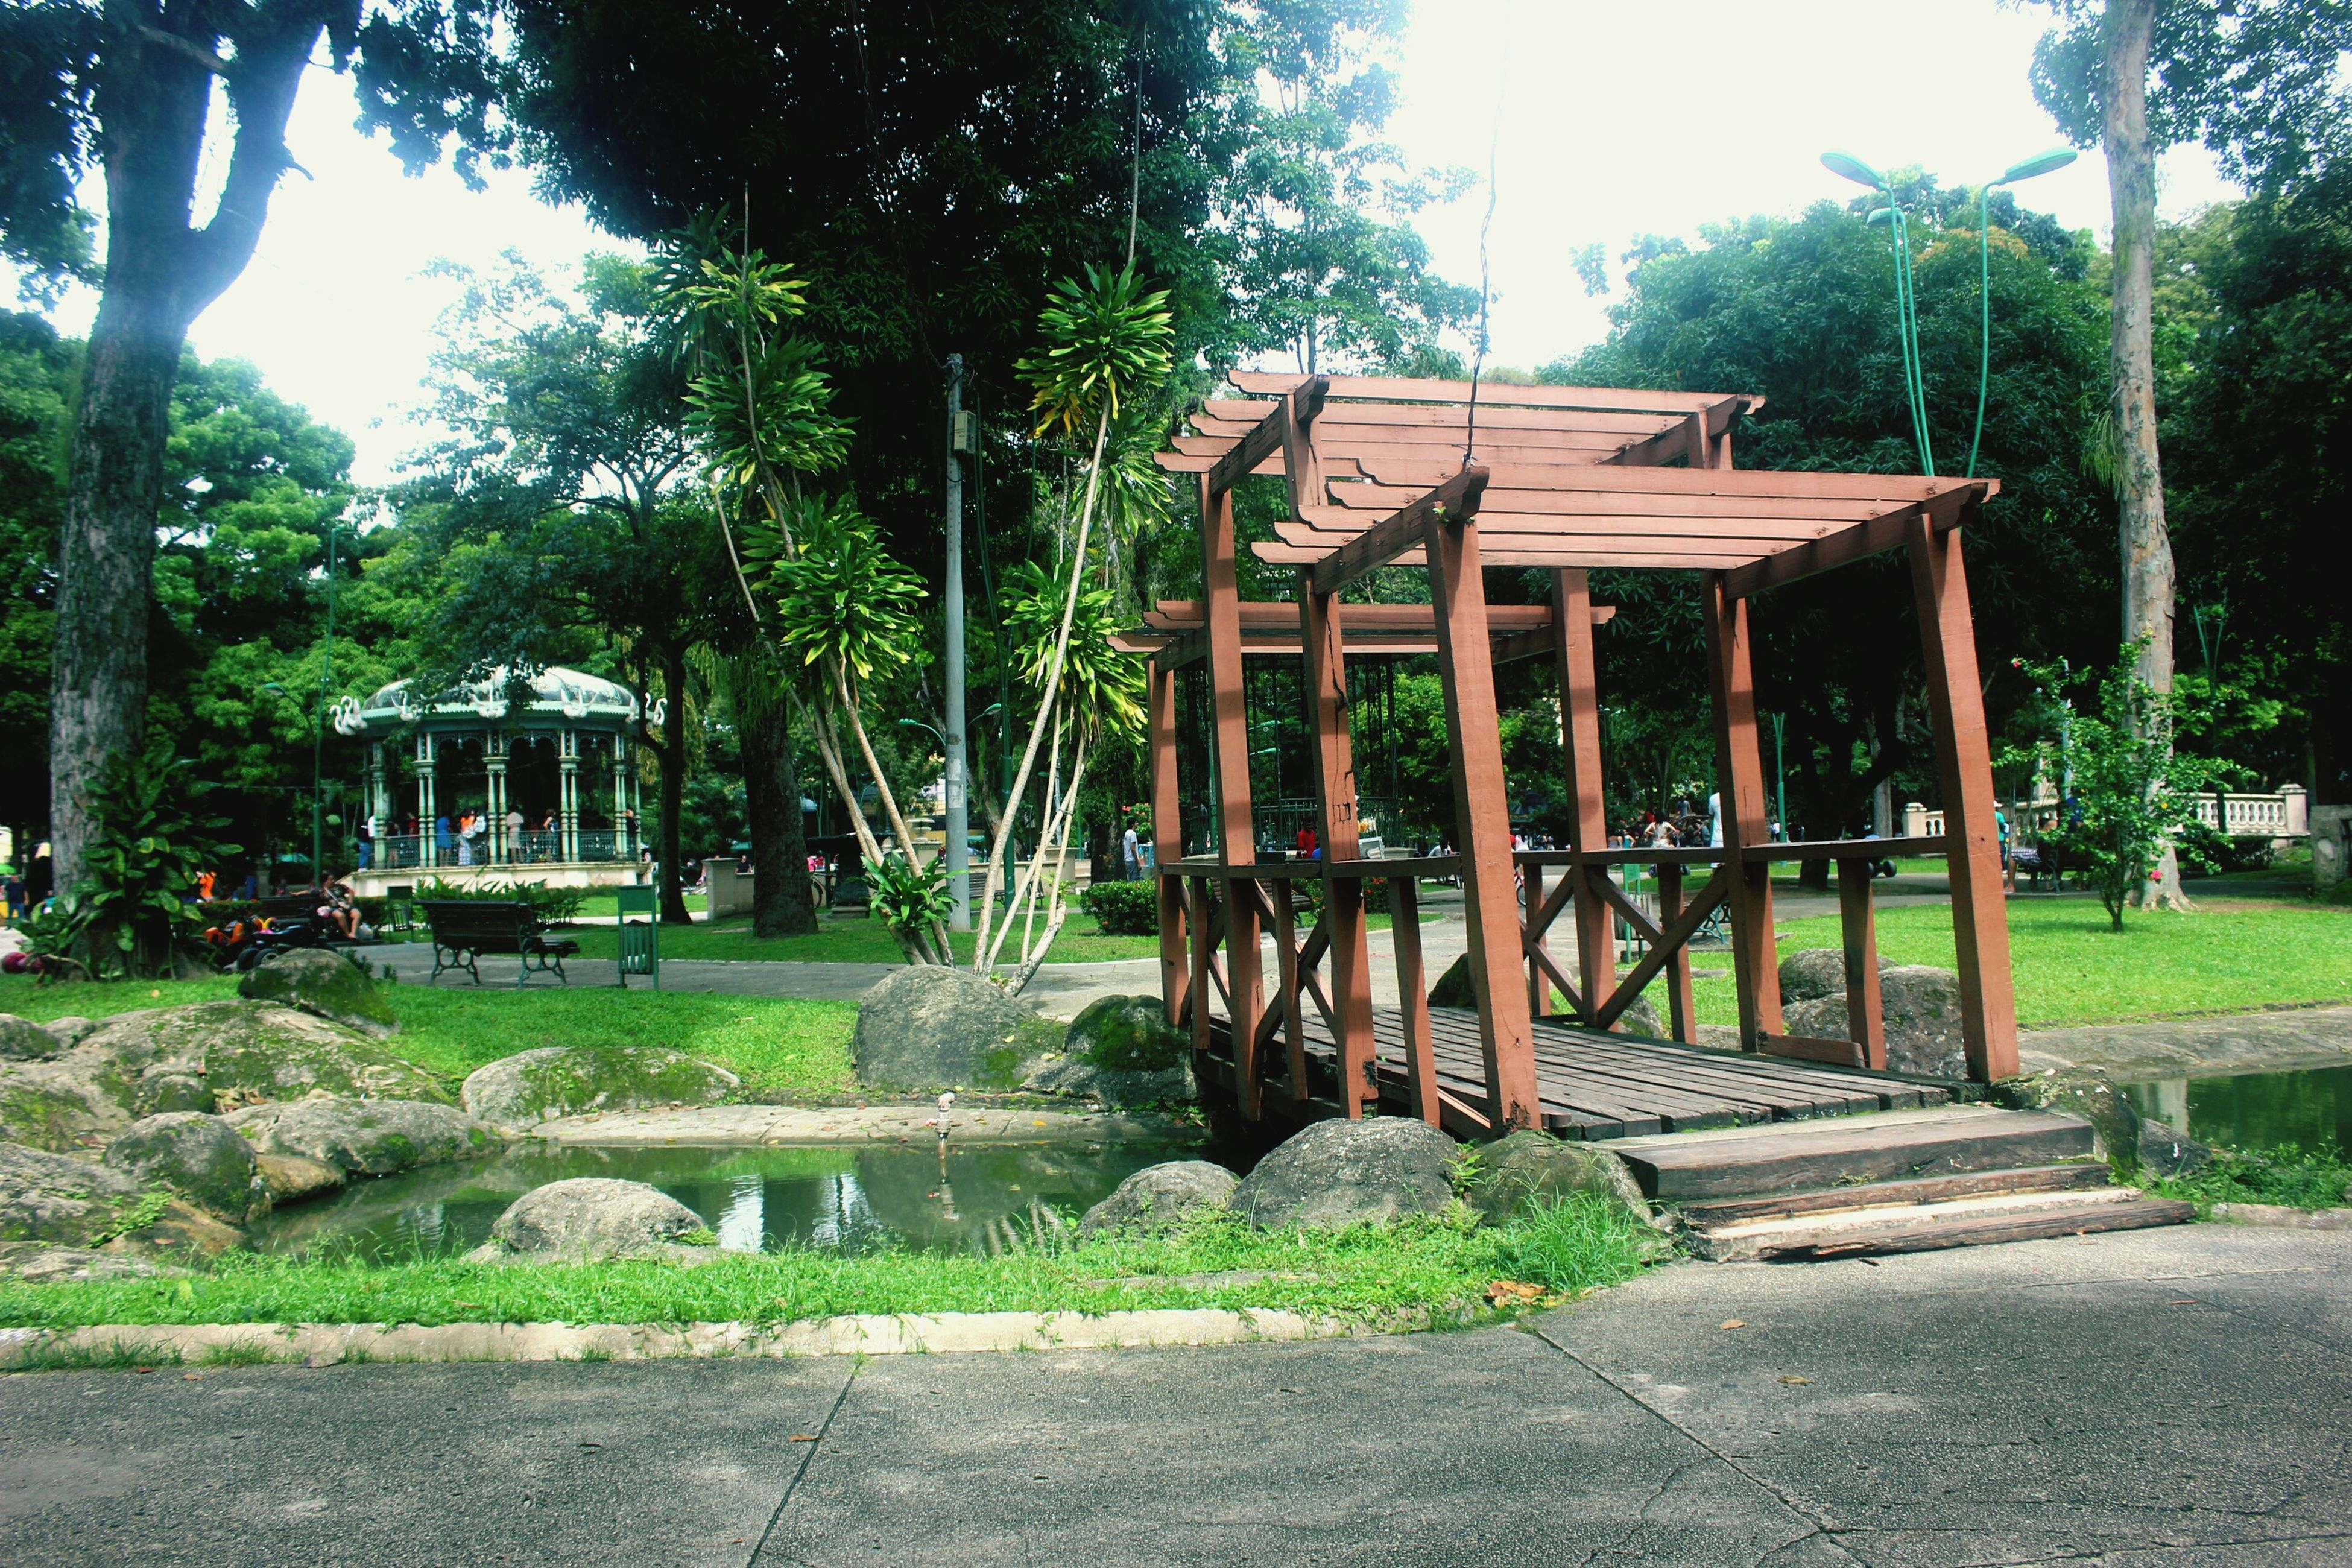 tree, park - man made space, built structure, growth, architecture, sunlight, bench, gazebo, building exterior, nature, clear sky, tranquility, grass, wood - material, park, green color, park bench, absence, shadow, day